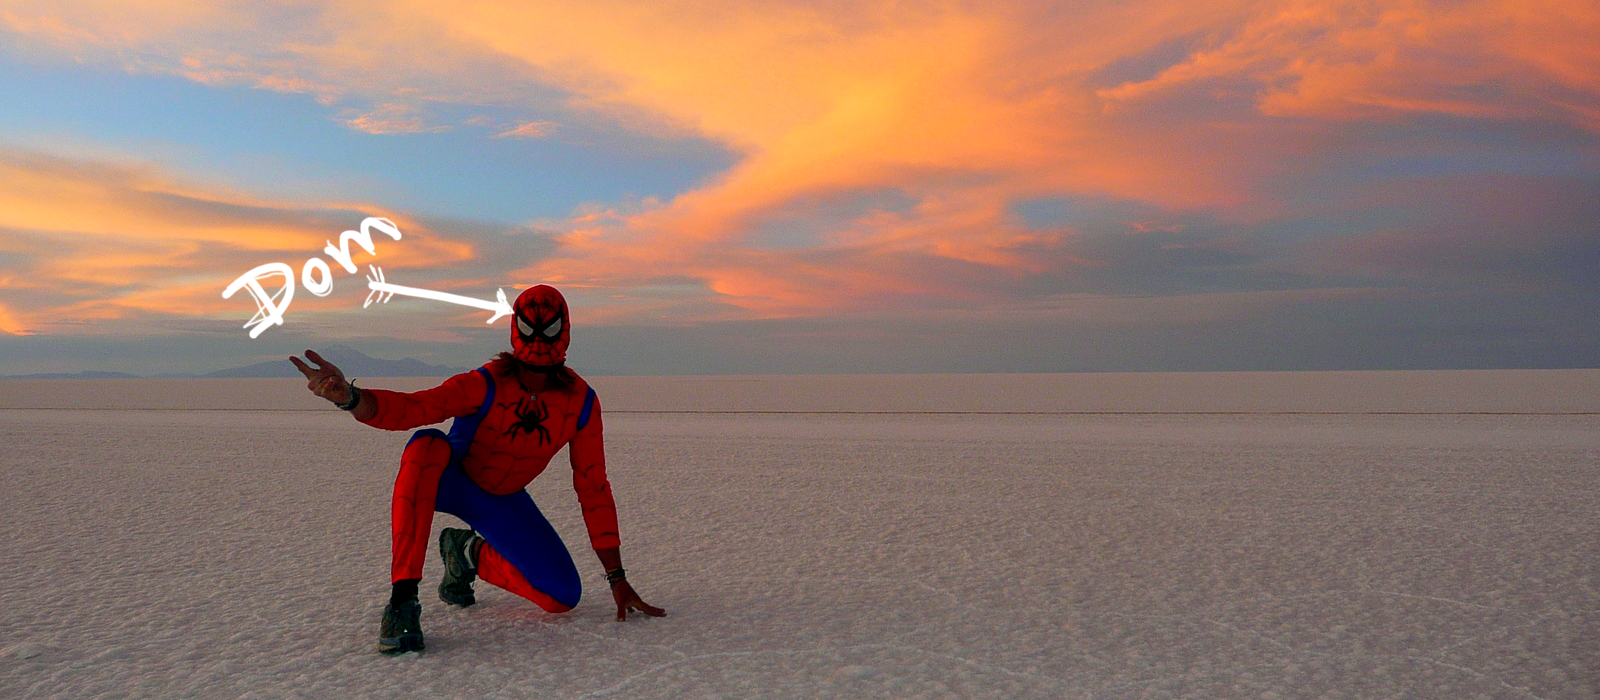 The seed of Encompass Films was born here. The Salar de Uyuni, Bolivia. One of the driest, saltiest places on Earth. -